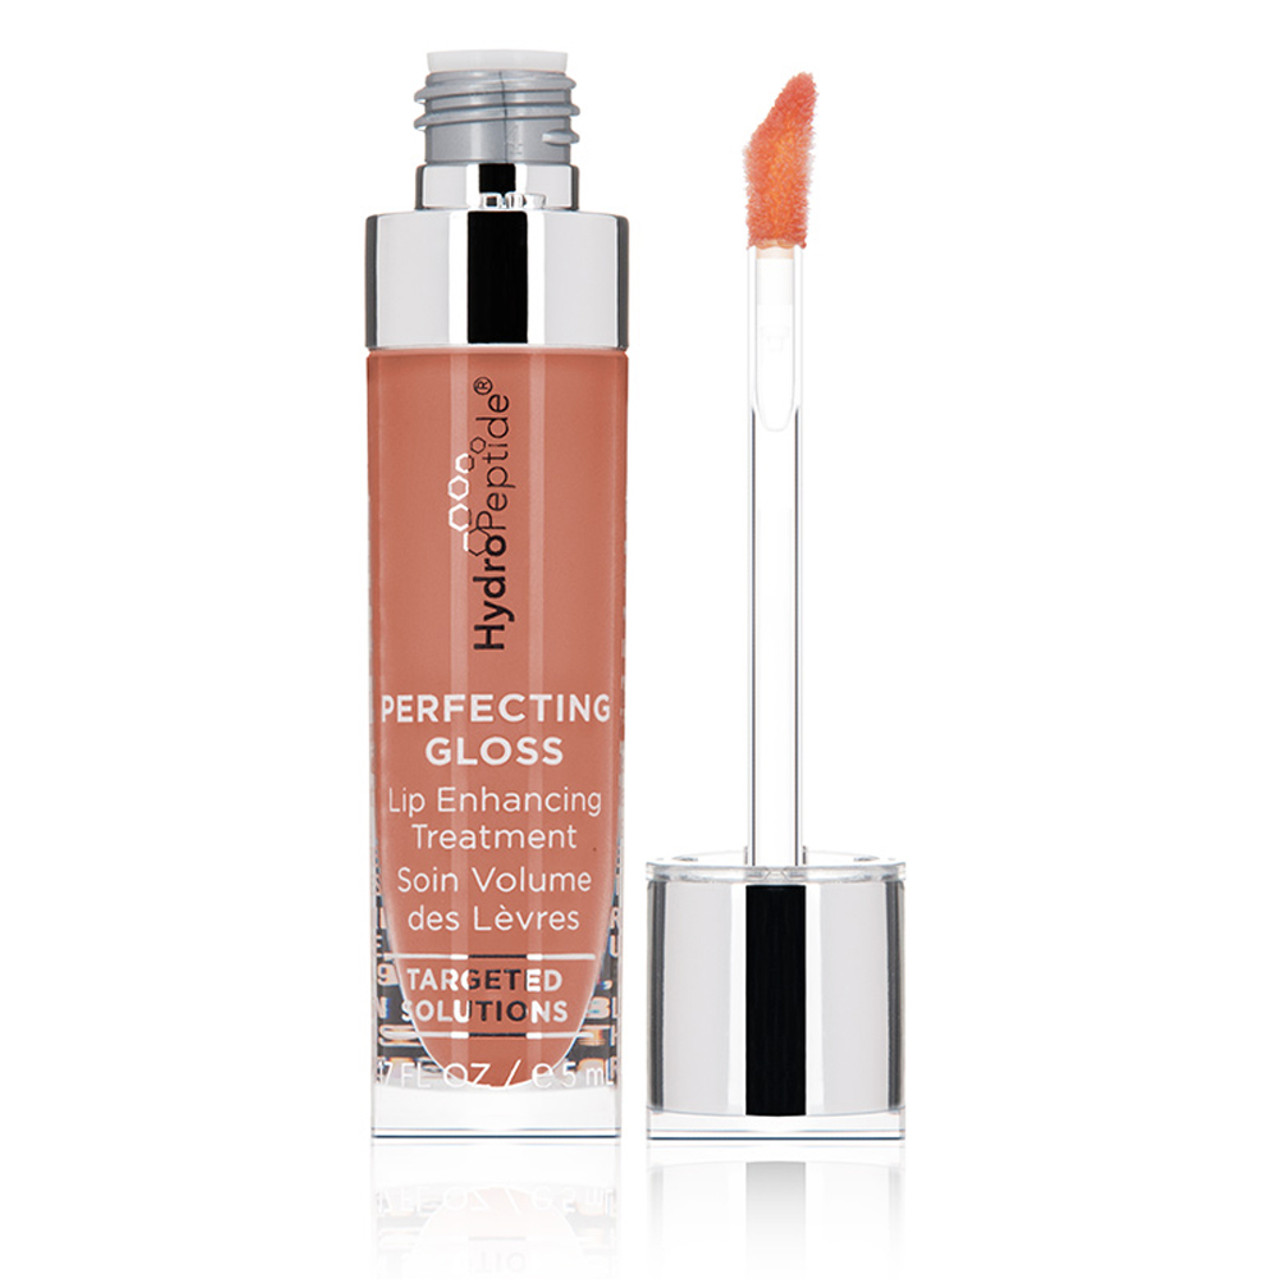 HydroPeptide Perfecting Gloss - Beach Blush